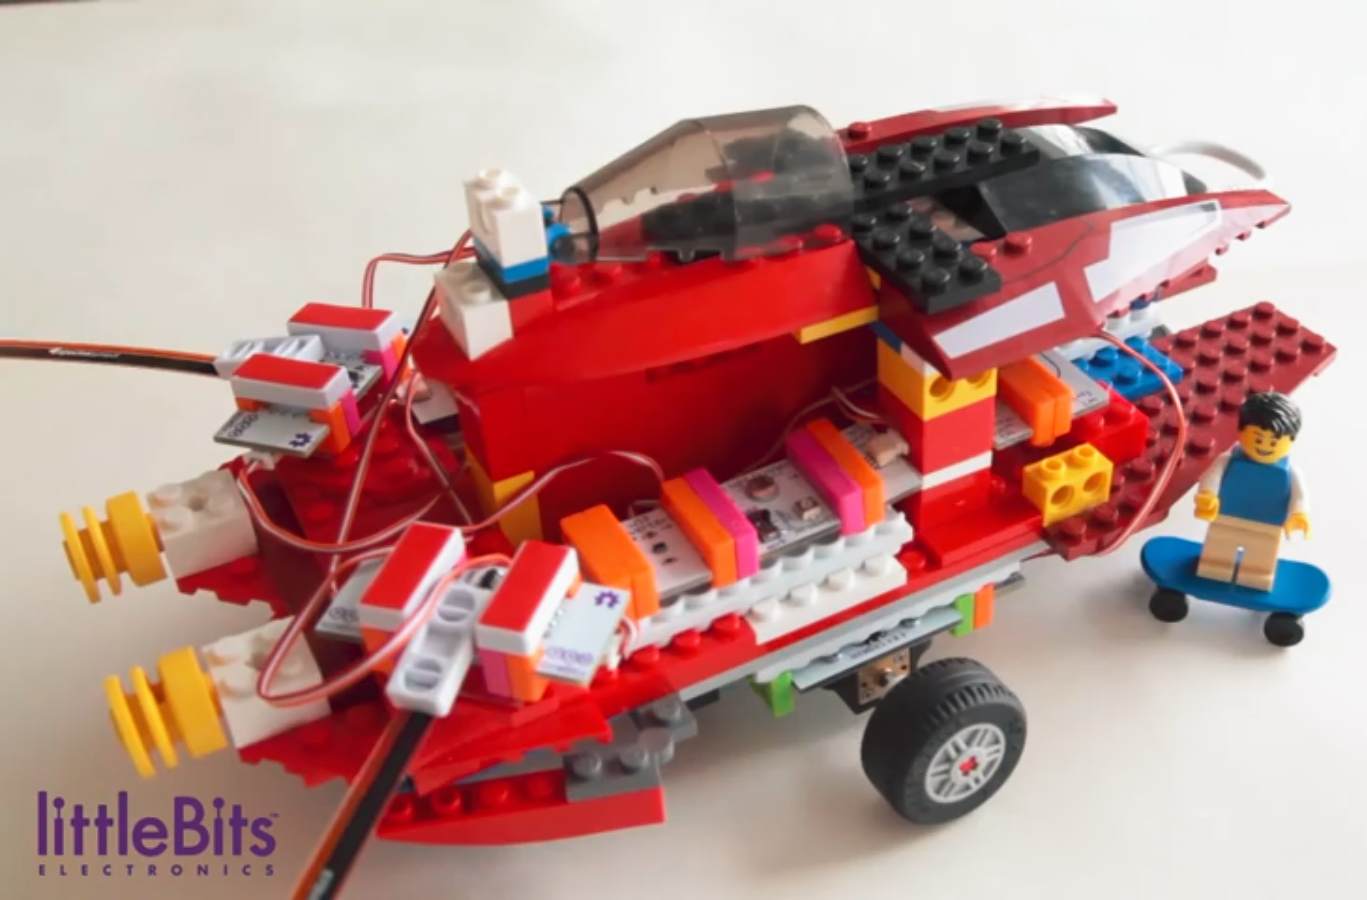 SET - GIZMOS & GADGETS KIT a LEGO brick adaptér